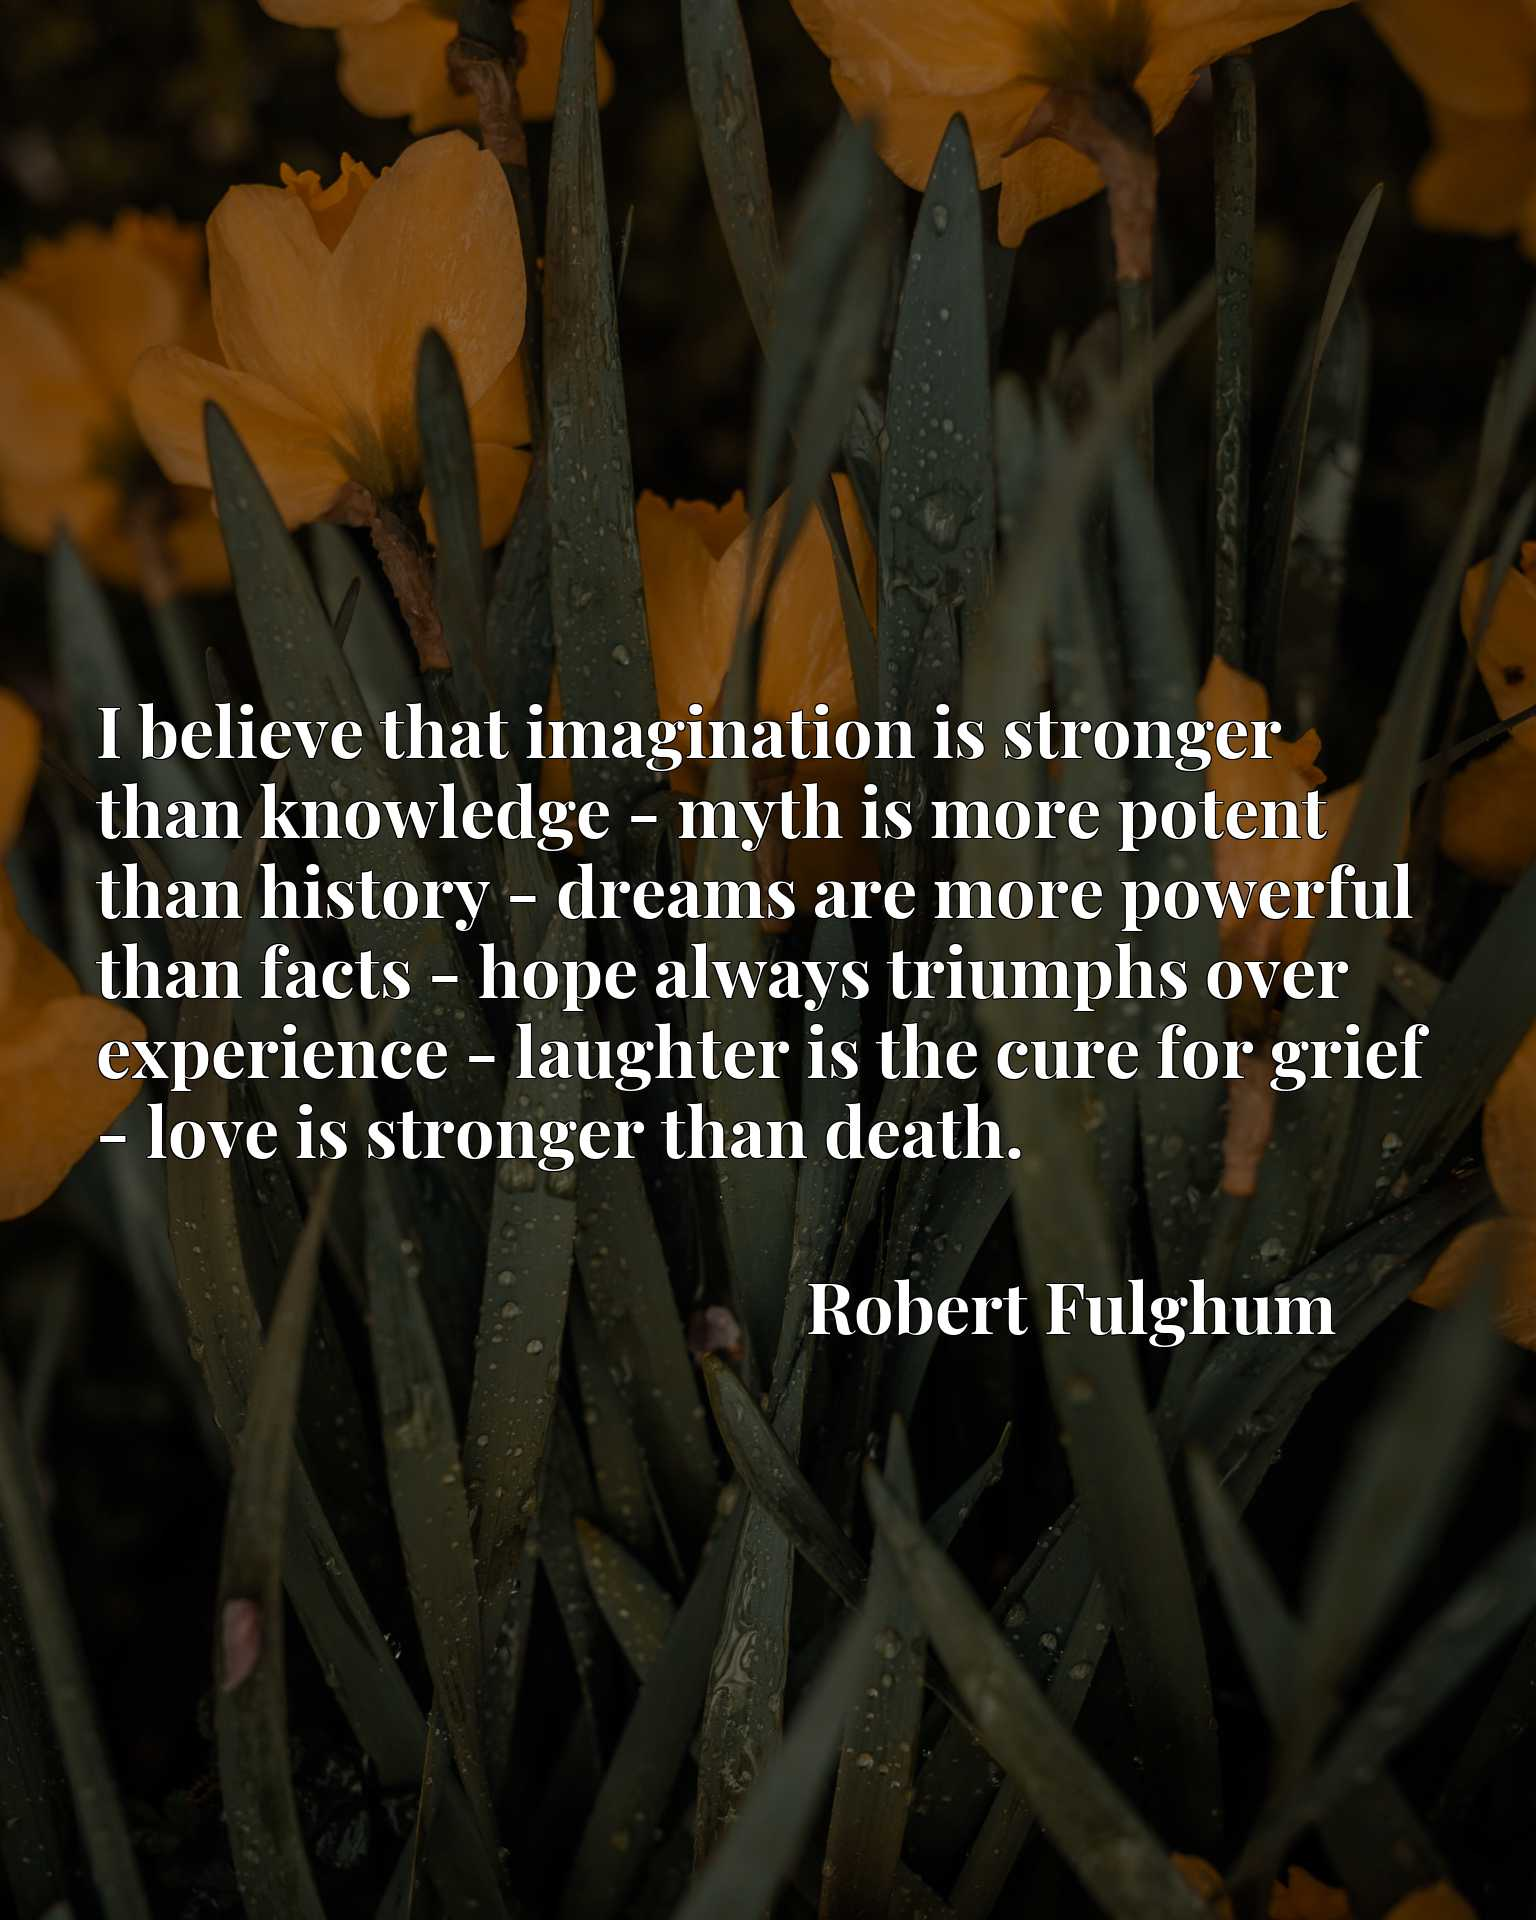 I believe that imagination is stronger than knowledge - myth is more potent than history - dreams are more powerful than facts - hope always triumphs over experience - laughter is the cure for grief - love is stronger than death.